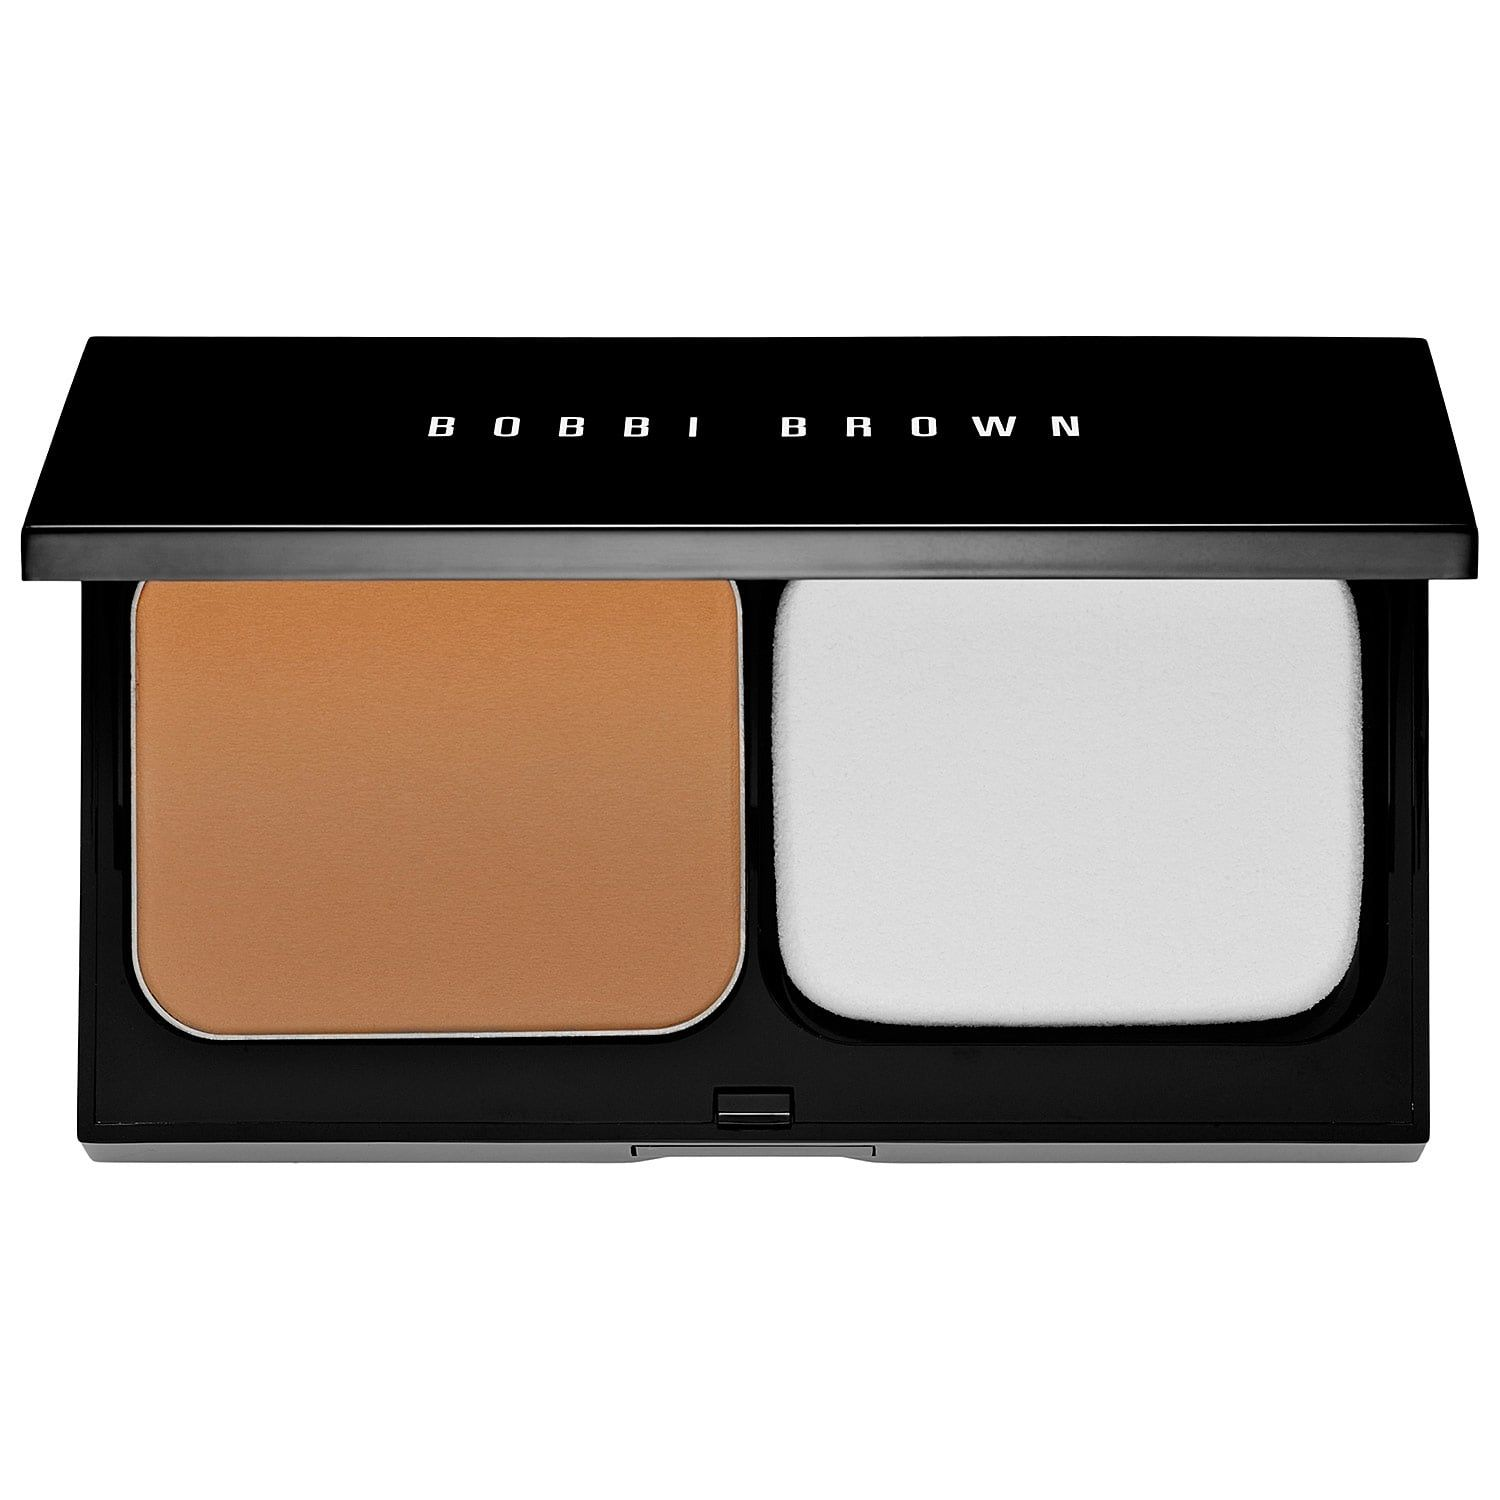 For Medium Coverage Skin Weightless Powder Foundation Bobbi Brown sephora.com $50.00 SHOP NOW If medium coverage is what you're looking for, this powder is your best bet. Apply it with a sponge for thicker cover-up and with a brush to use it as setting powder.